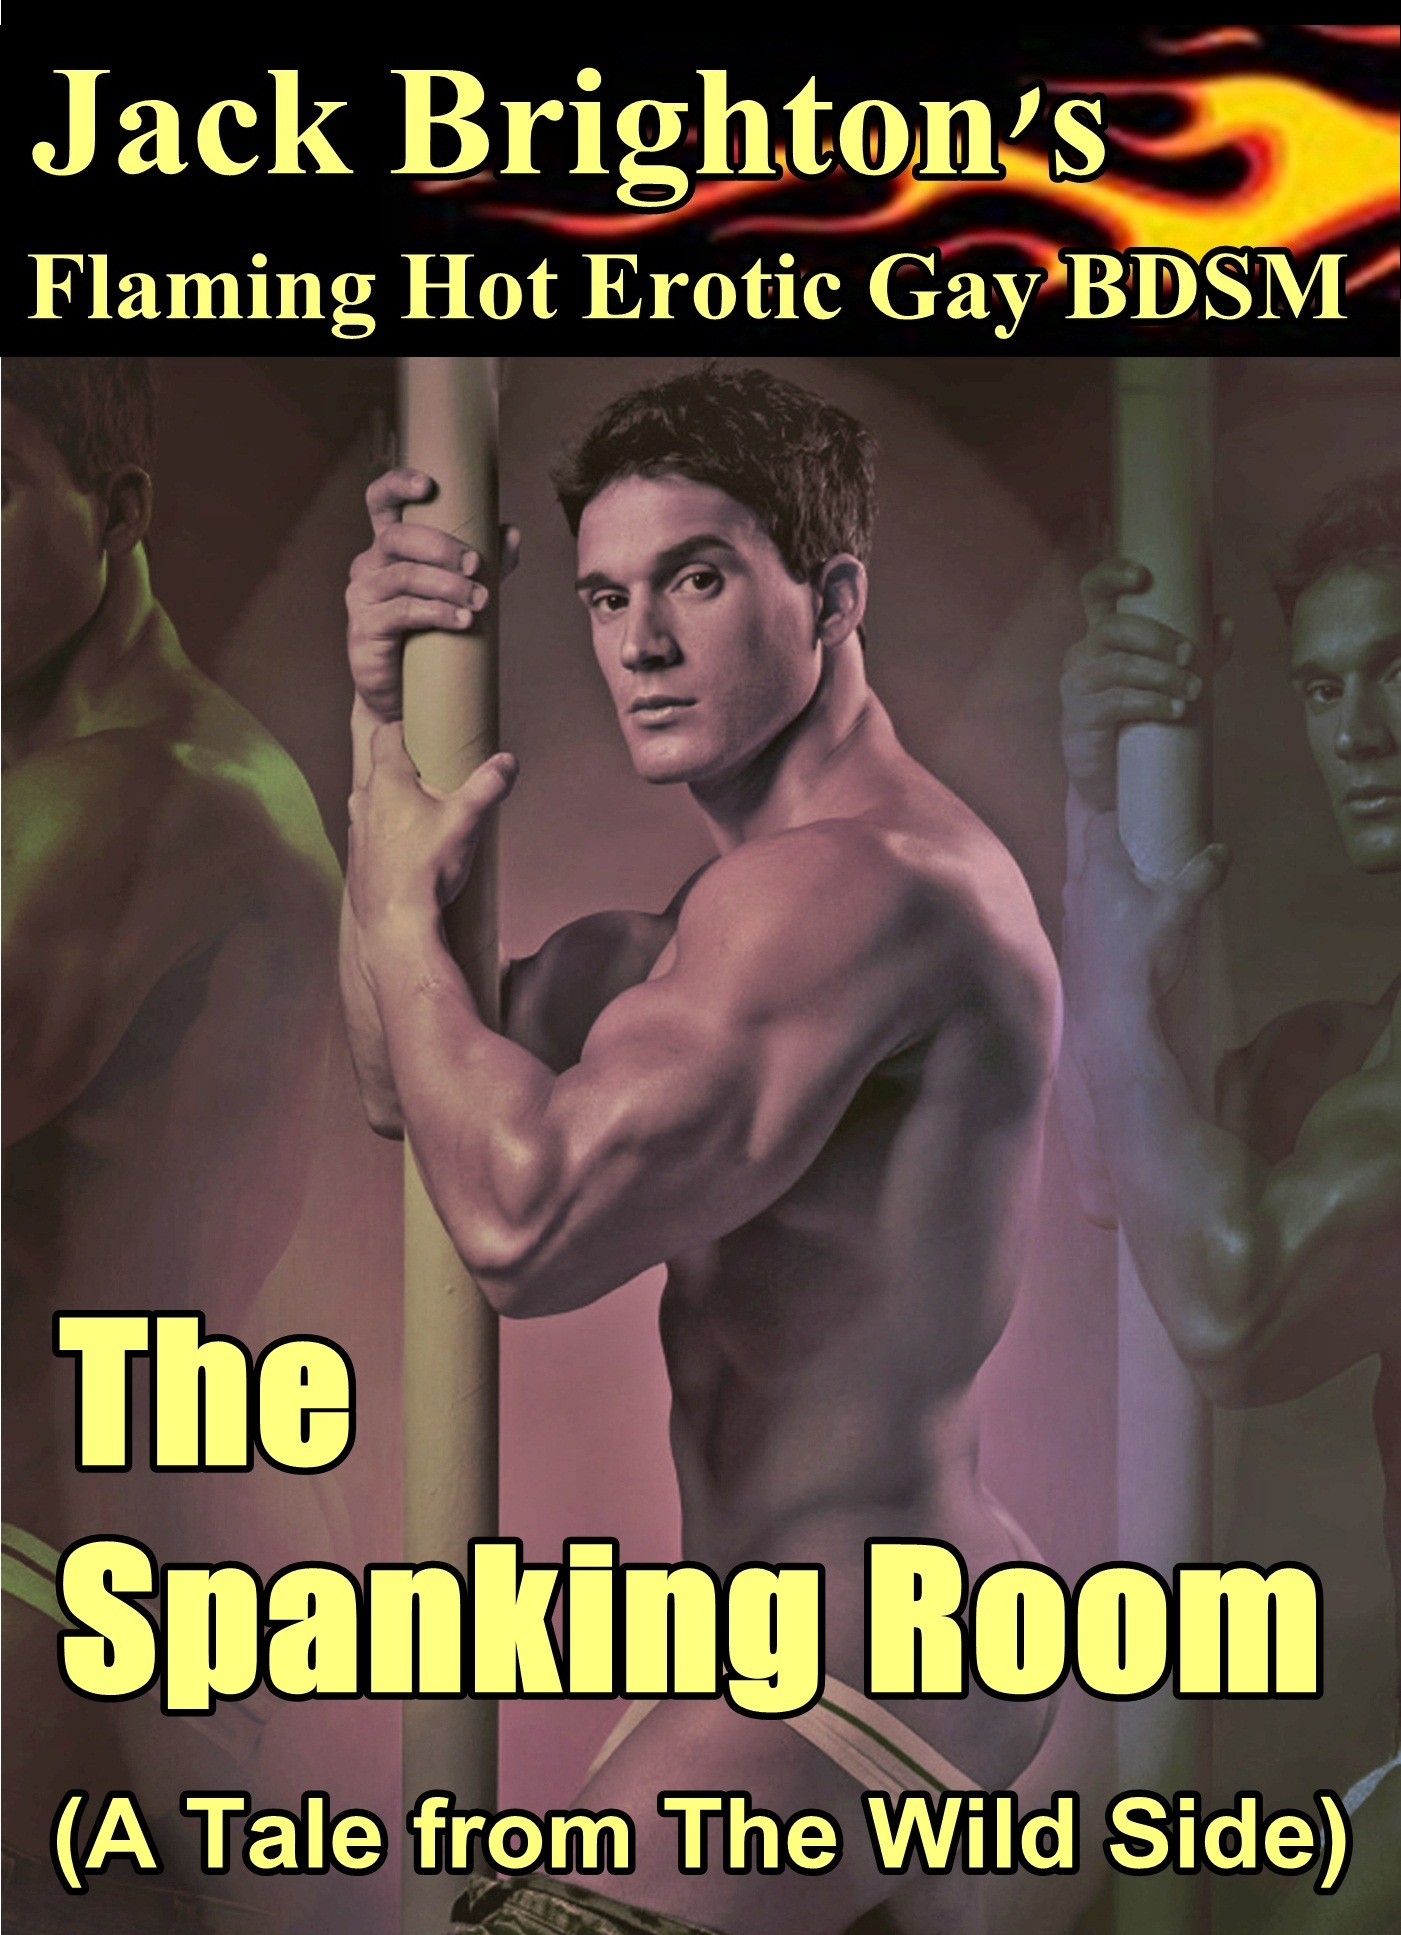 The Spanking Room (A Flaming Hot Erotic Gay Tale from The Wild Side)